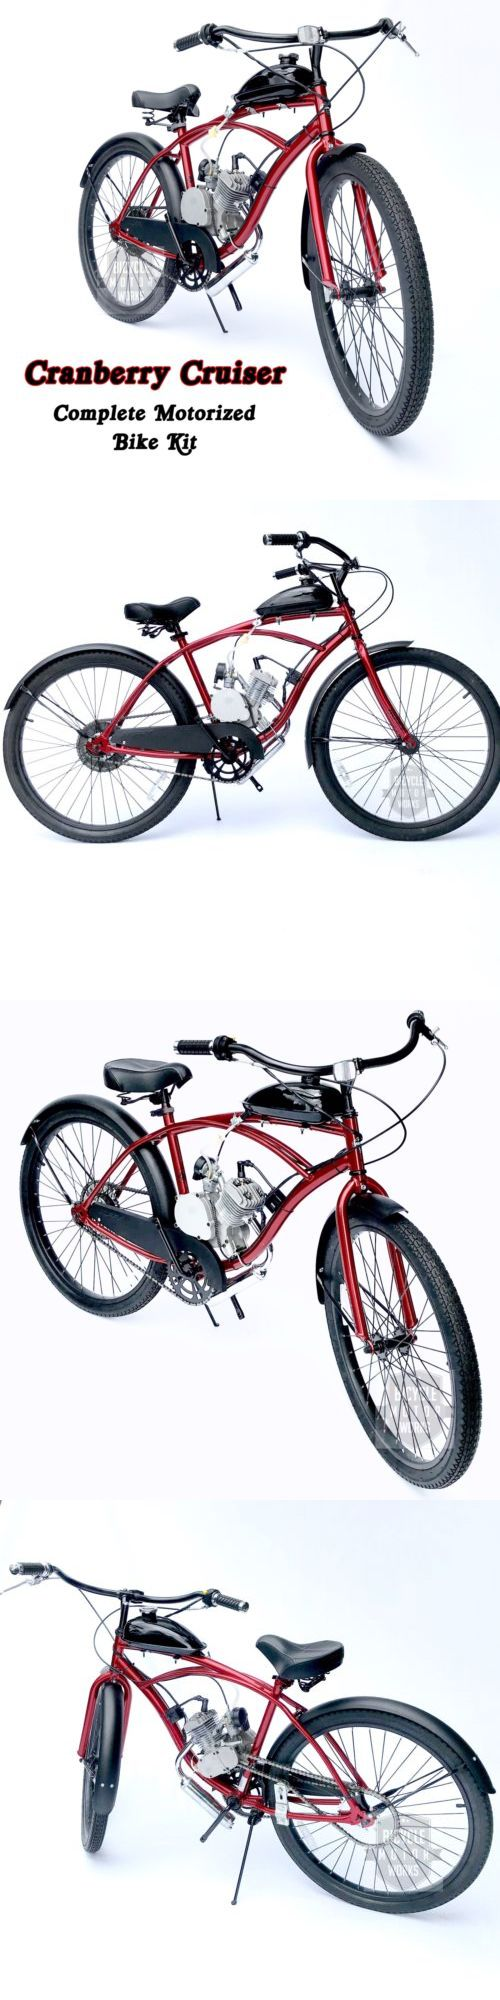 Gas Scooters 75211: Cranberry Cruiser - Motorized 66Cc Engine And Cruiser Bicycle Kit - Build Yourself -> BUY IT NOW ONLY: $259.99 on eBay!